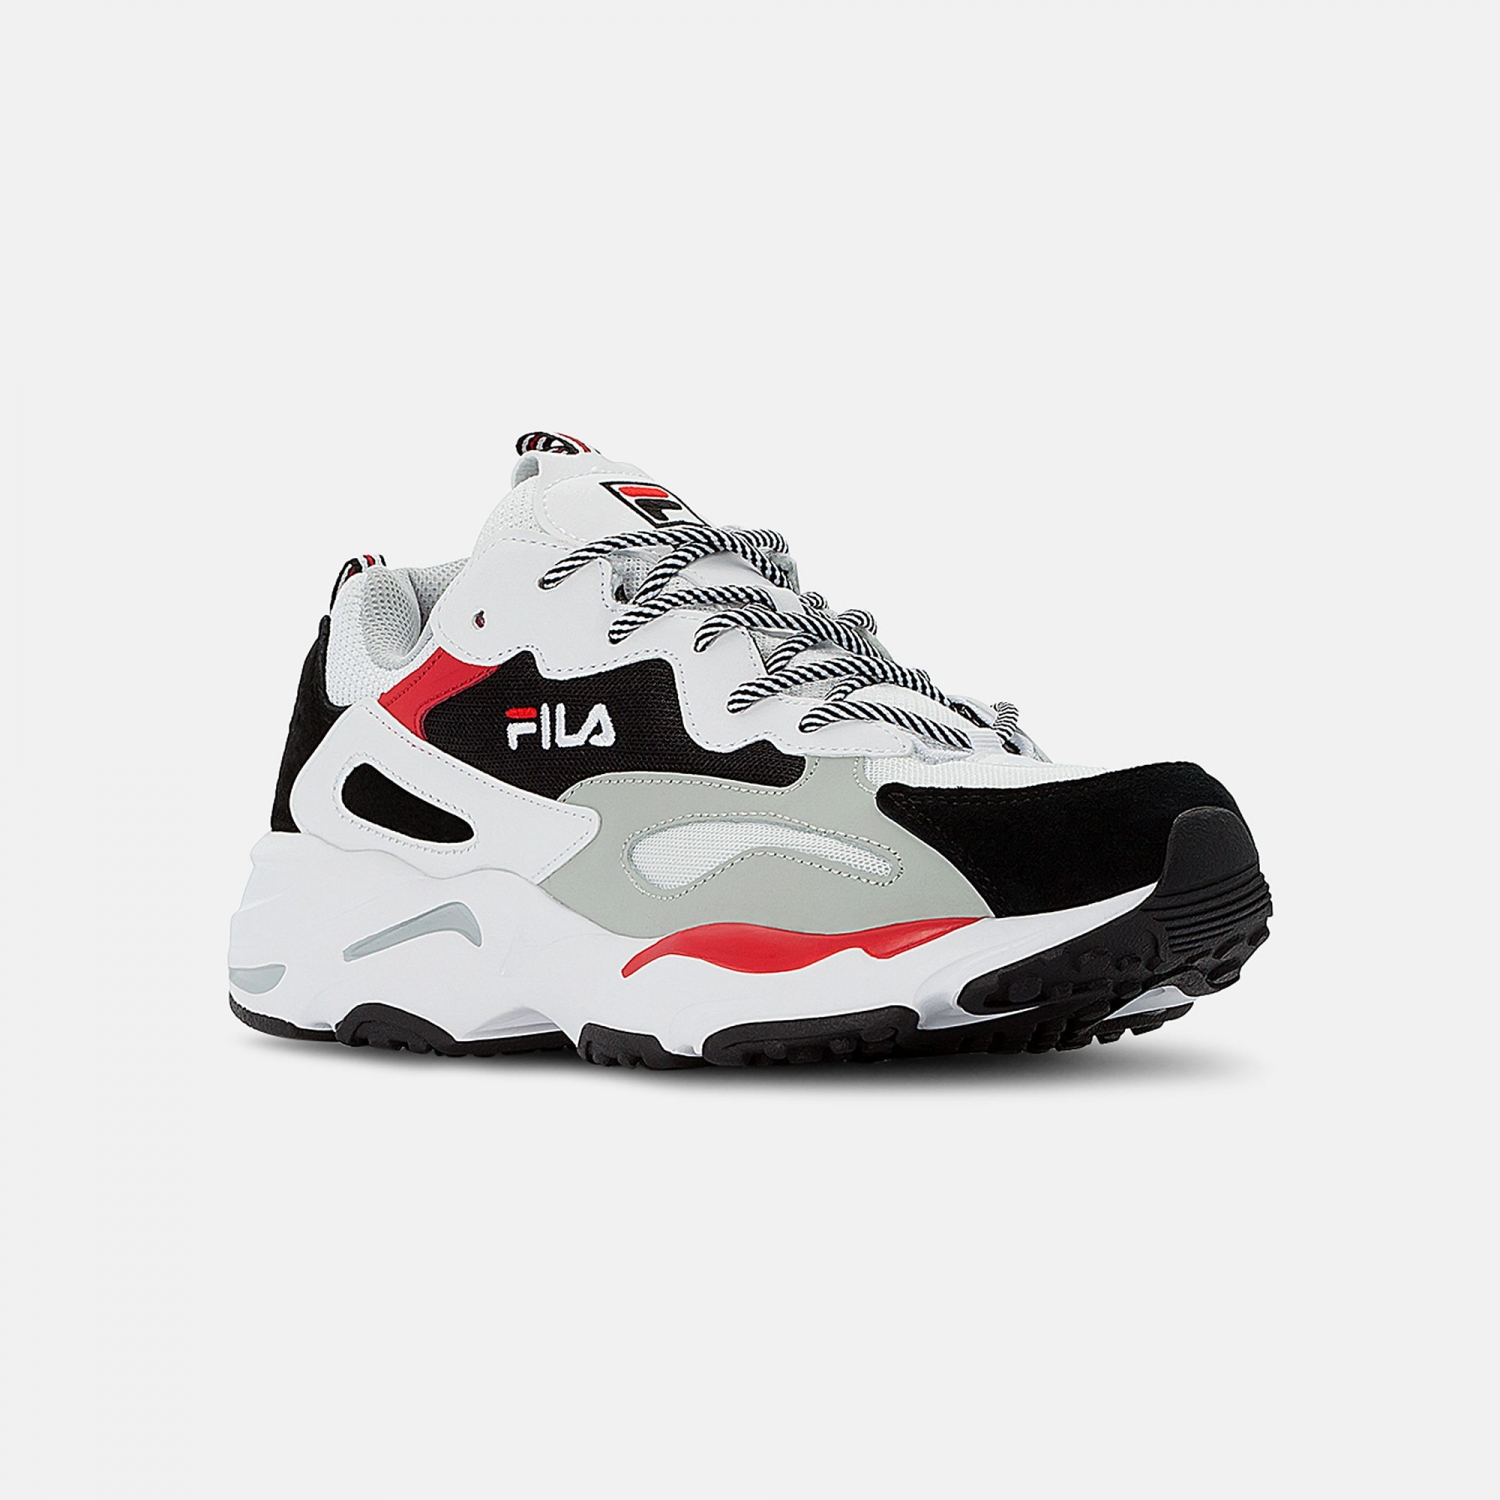 Fila Ray Tracer Men white-black-red  Bild 2